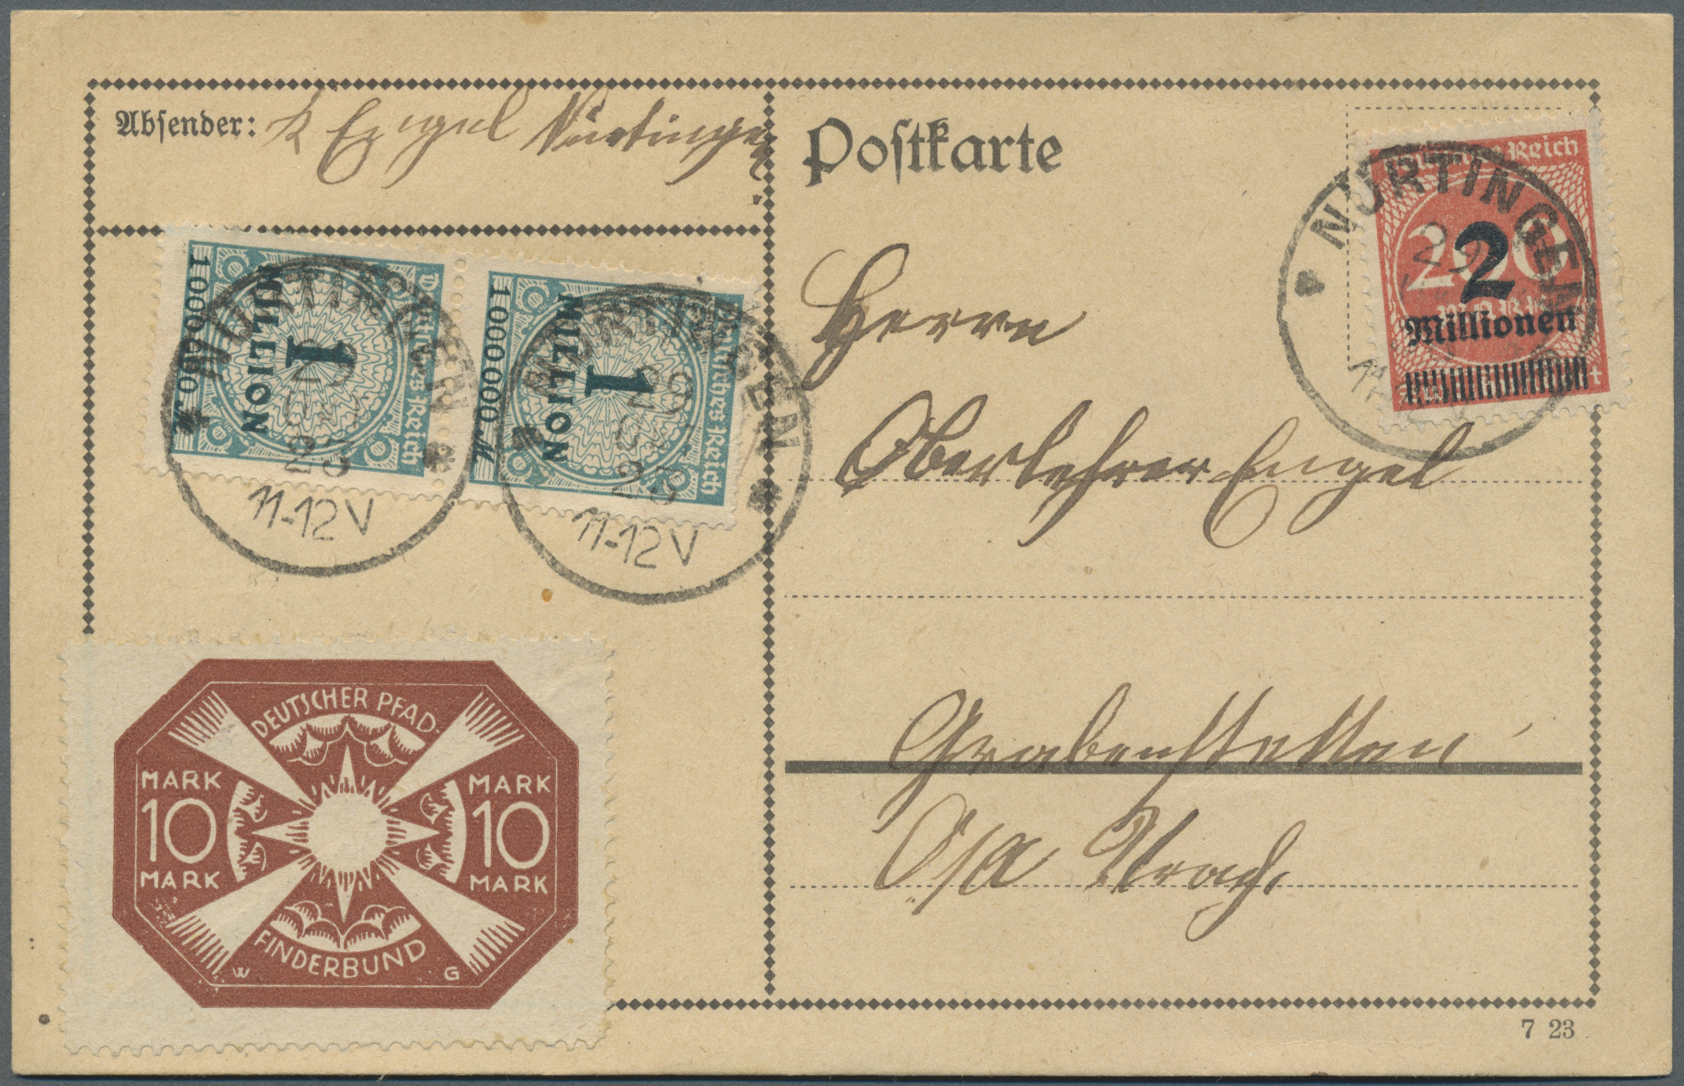 Lot 11924 - thematik: pfadfinder / boy scouts  -  Auktionshaus Christoph Gärtner GmbH & Co. KG Single lots Philately Overseas & Europe. Auction #39 Day 4